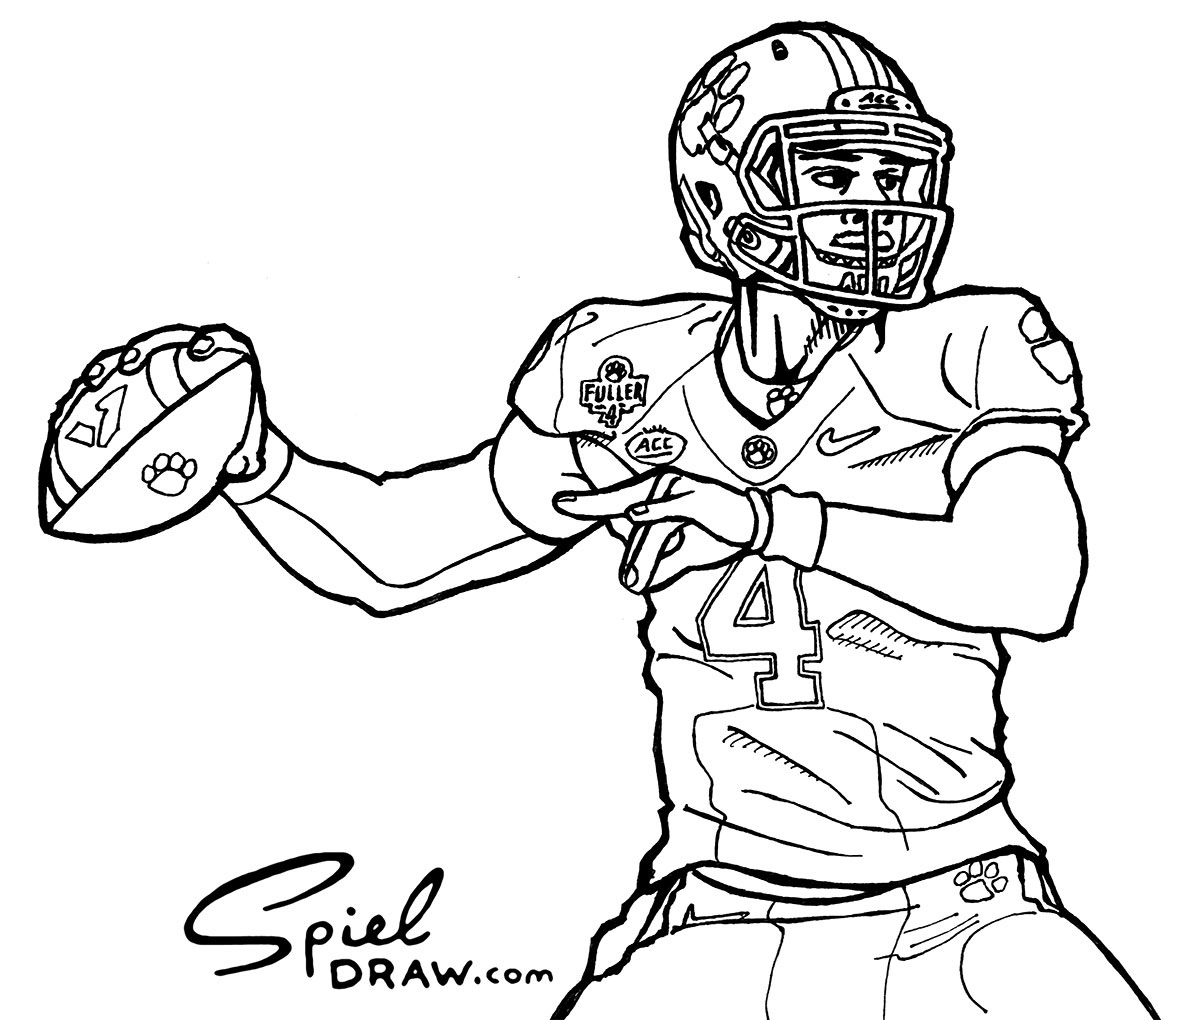 clemson football coloring pages | Clemson Coloring Pages Coloring Pages